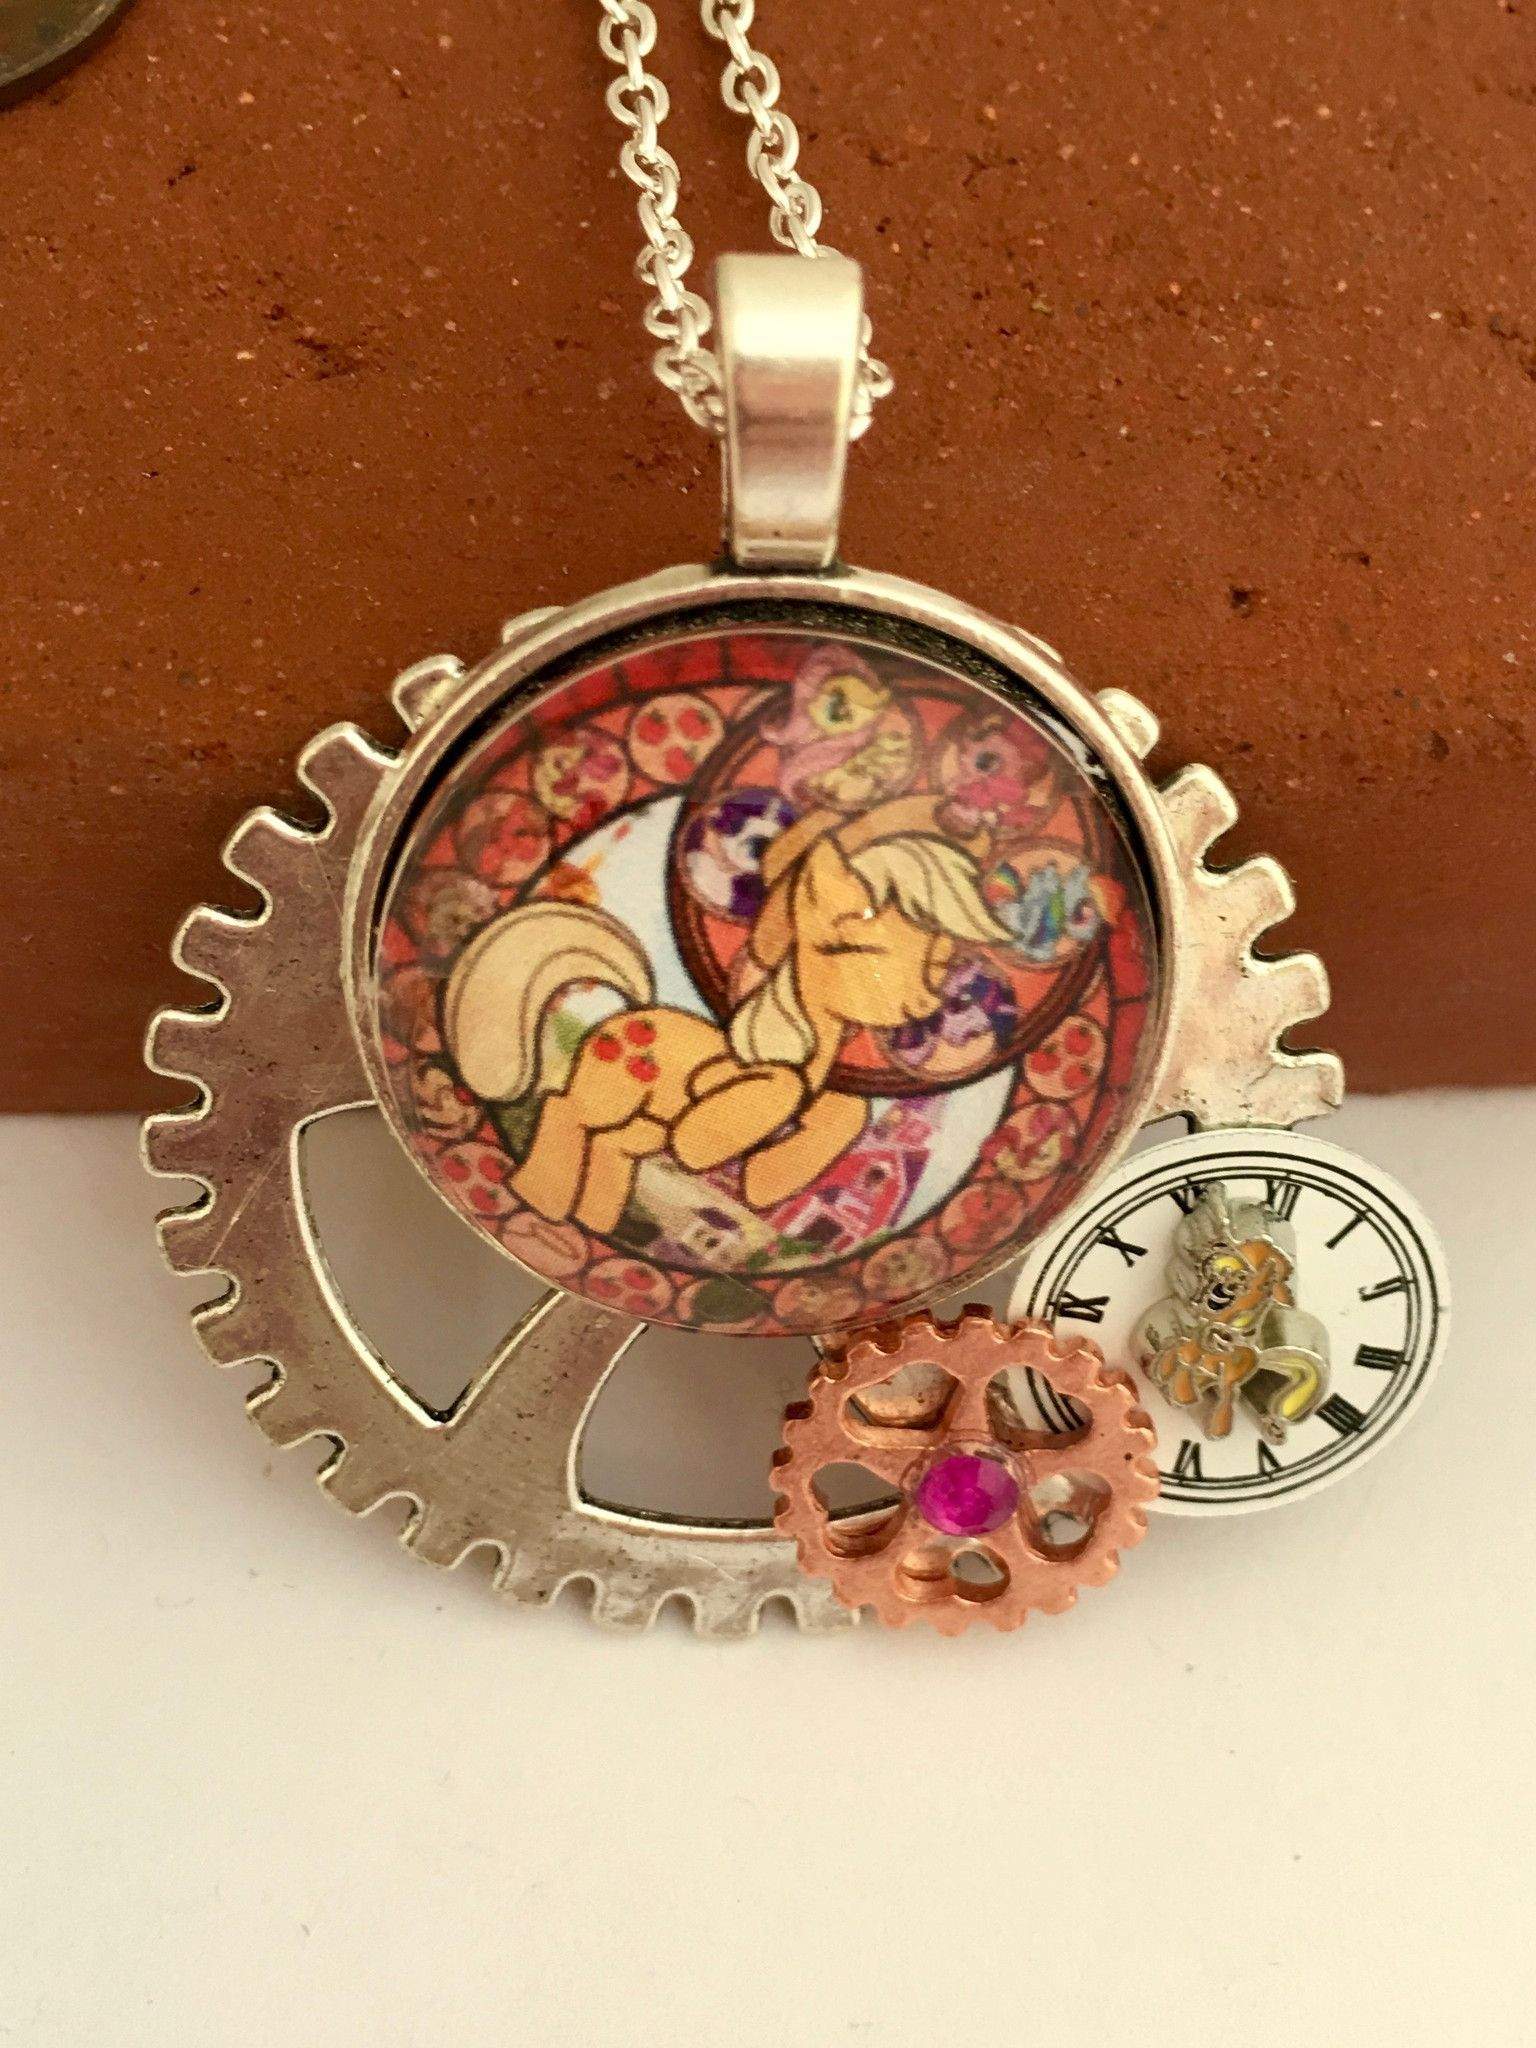 My little pony brony inspired pendants pony pendants and mlp my little pony inspired steampunk pendants for the kid in you or the brony in mozeypictures Images